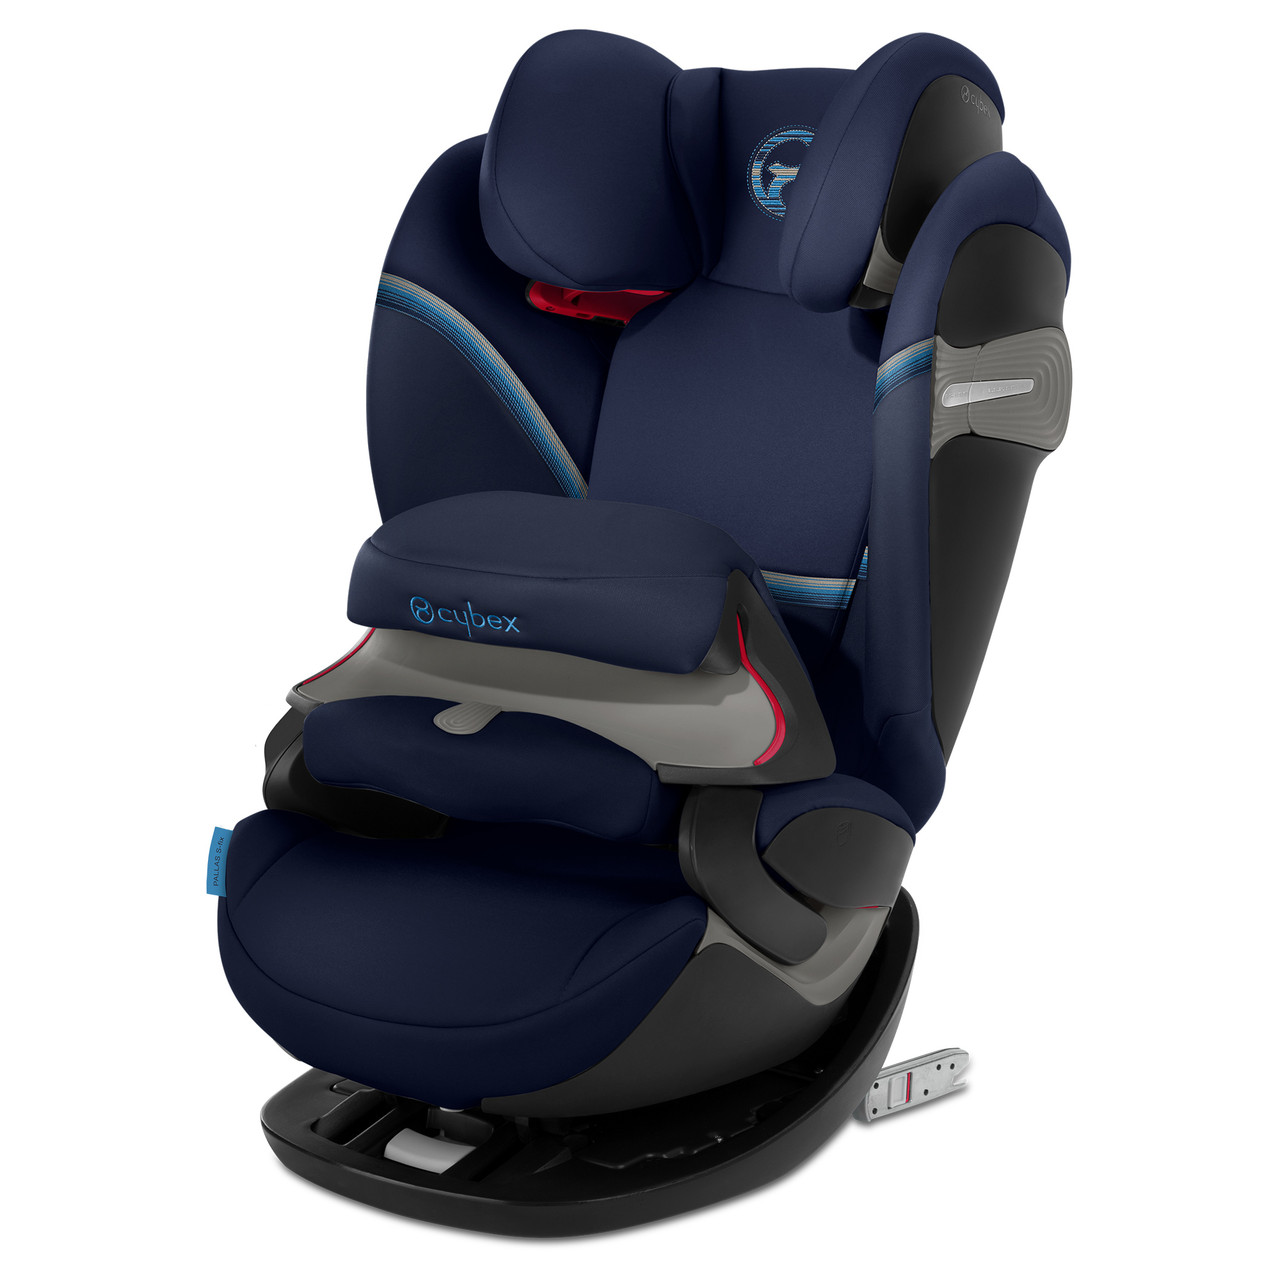 Автокресло Cybex Pallas S-fix (Navy Blue navy blue)